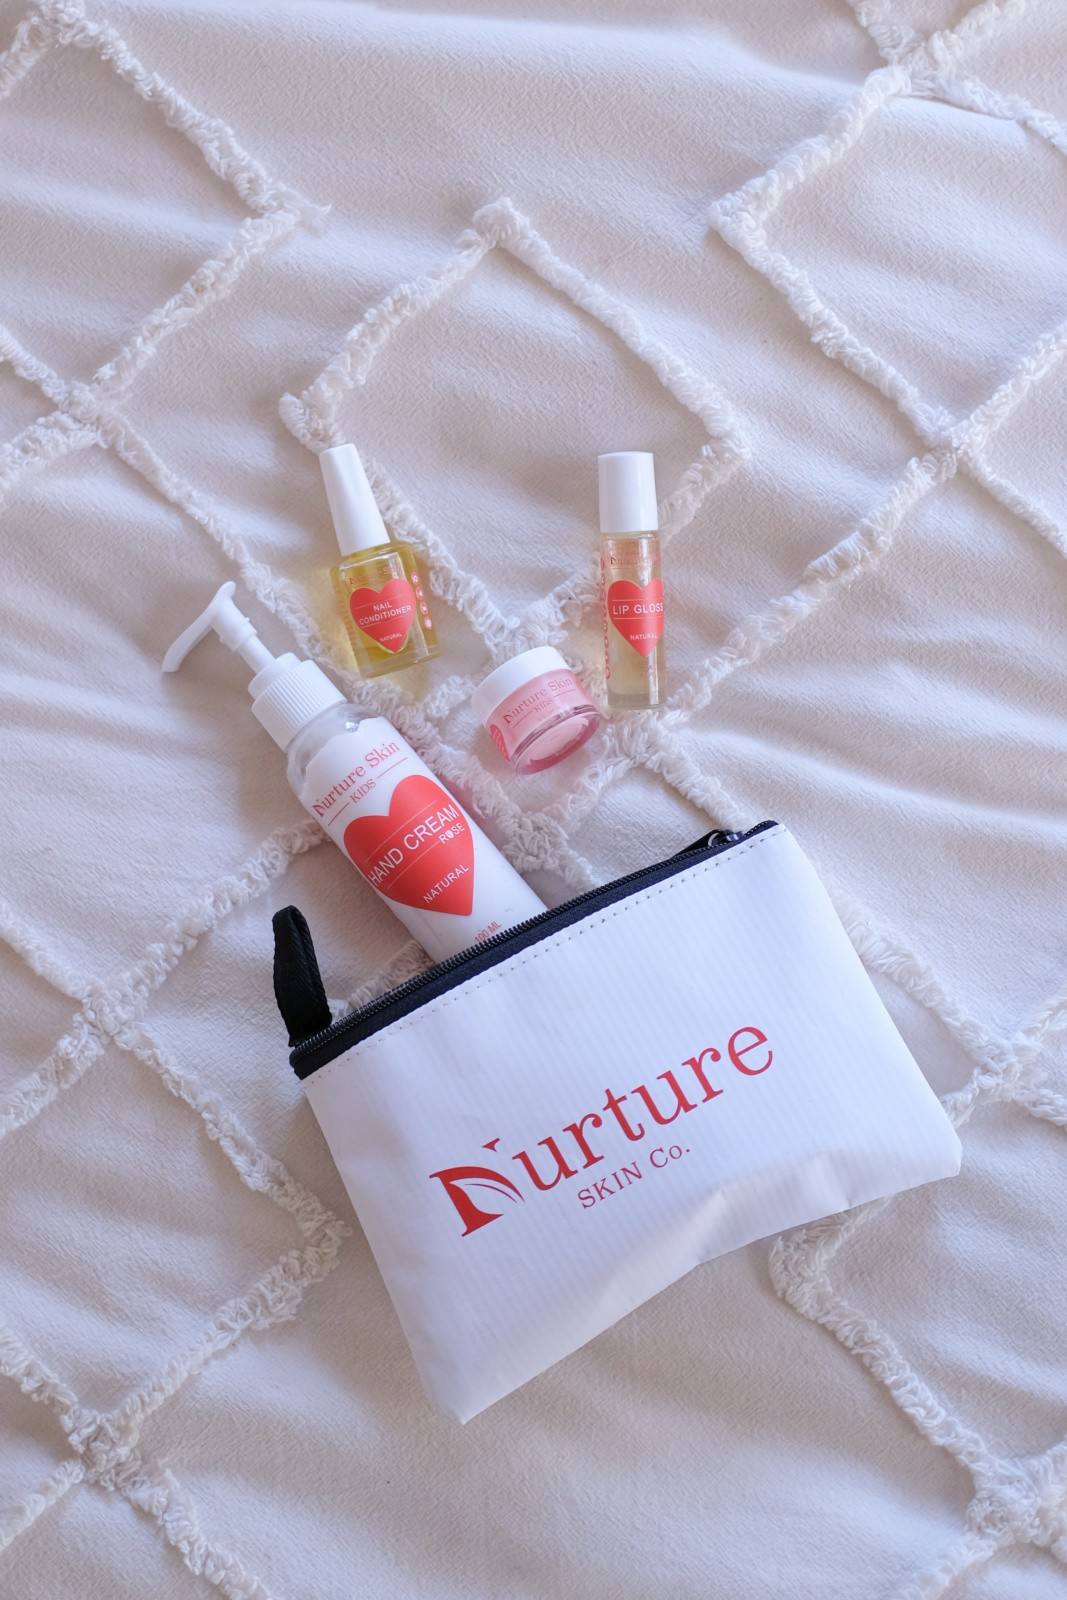 Nurture Skin Natural Skincare For Kids